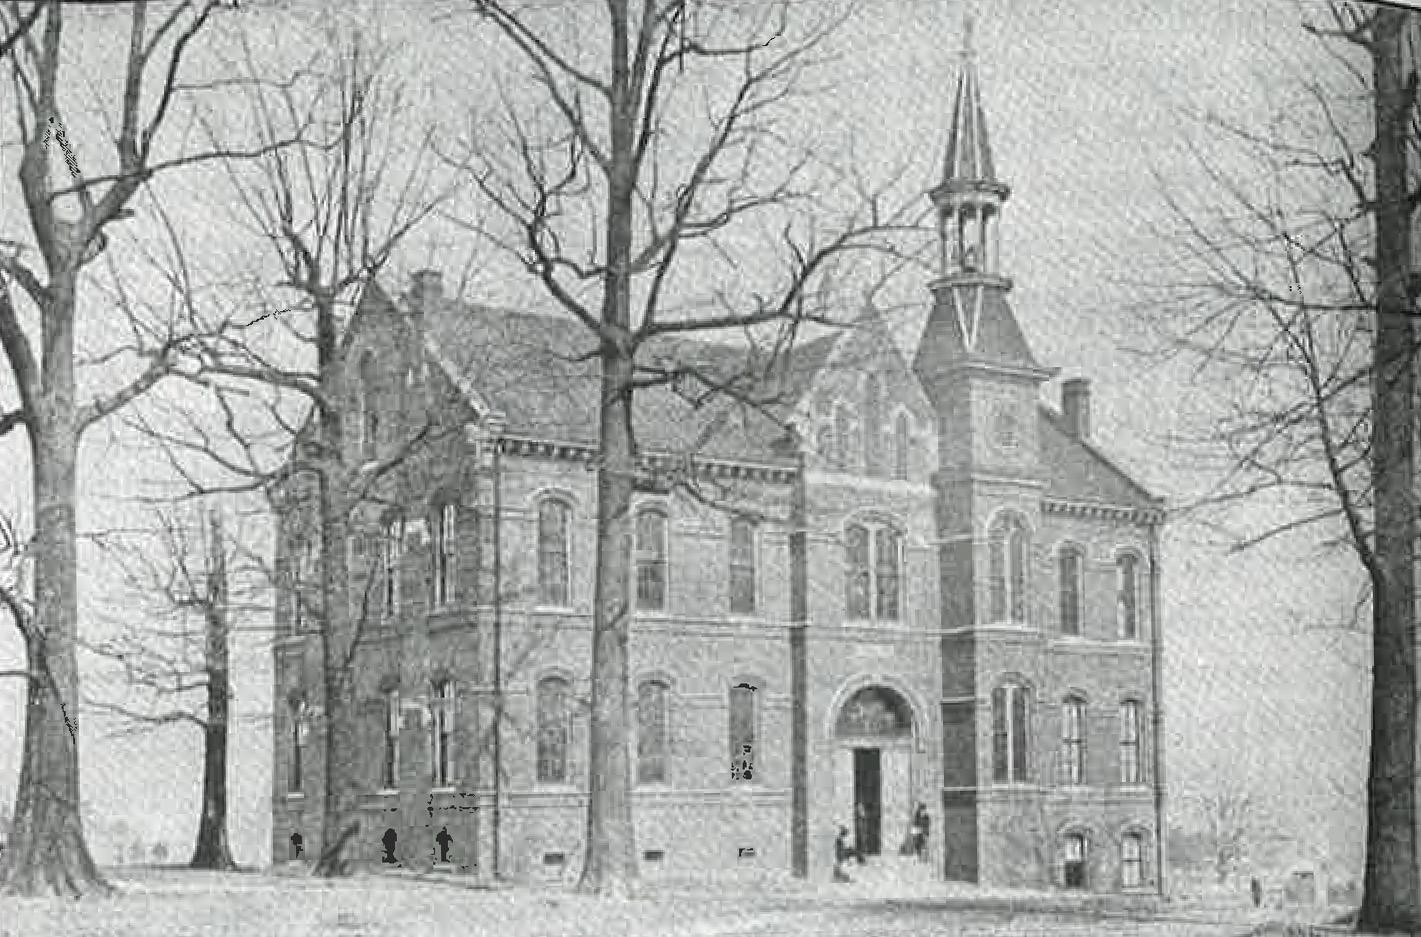 The Stewart Building, named for William M. Stewart, contained the library, laboratories and lecture halls after construction was finished in 1879.